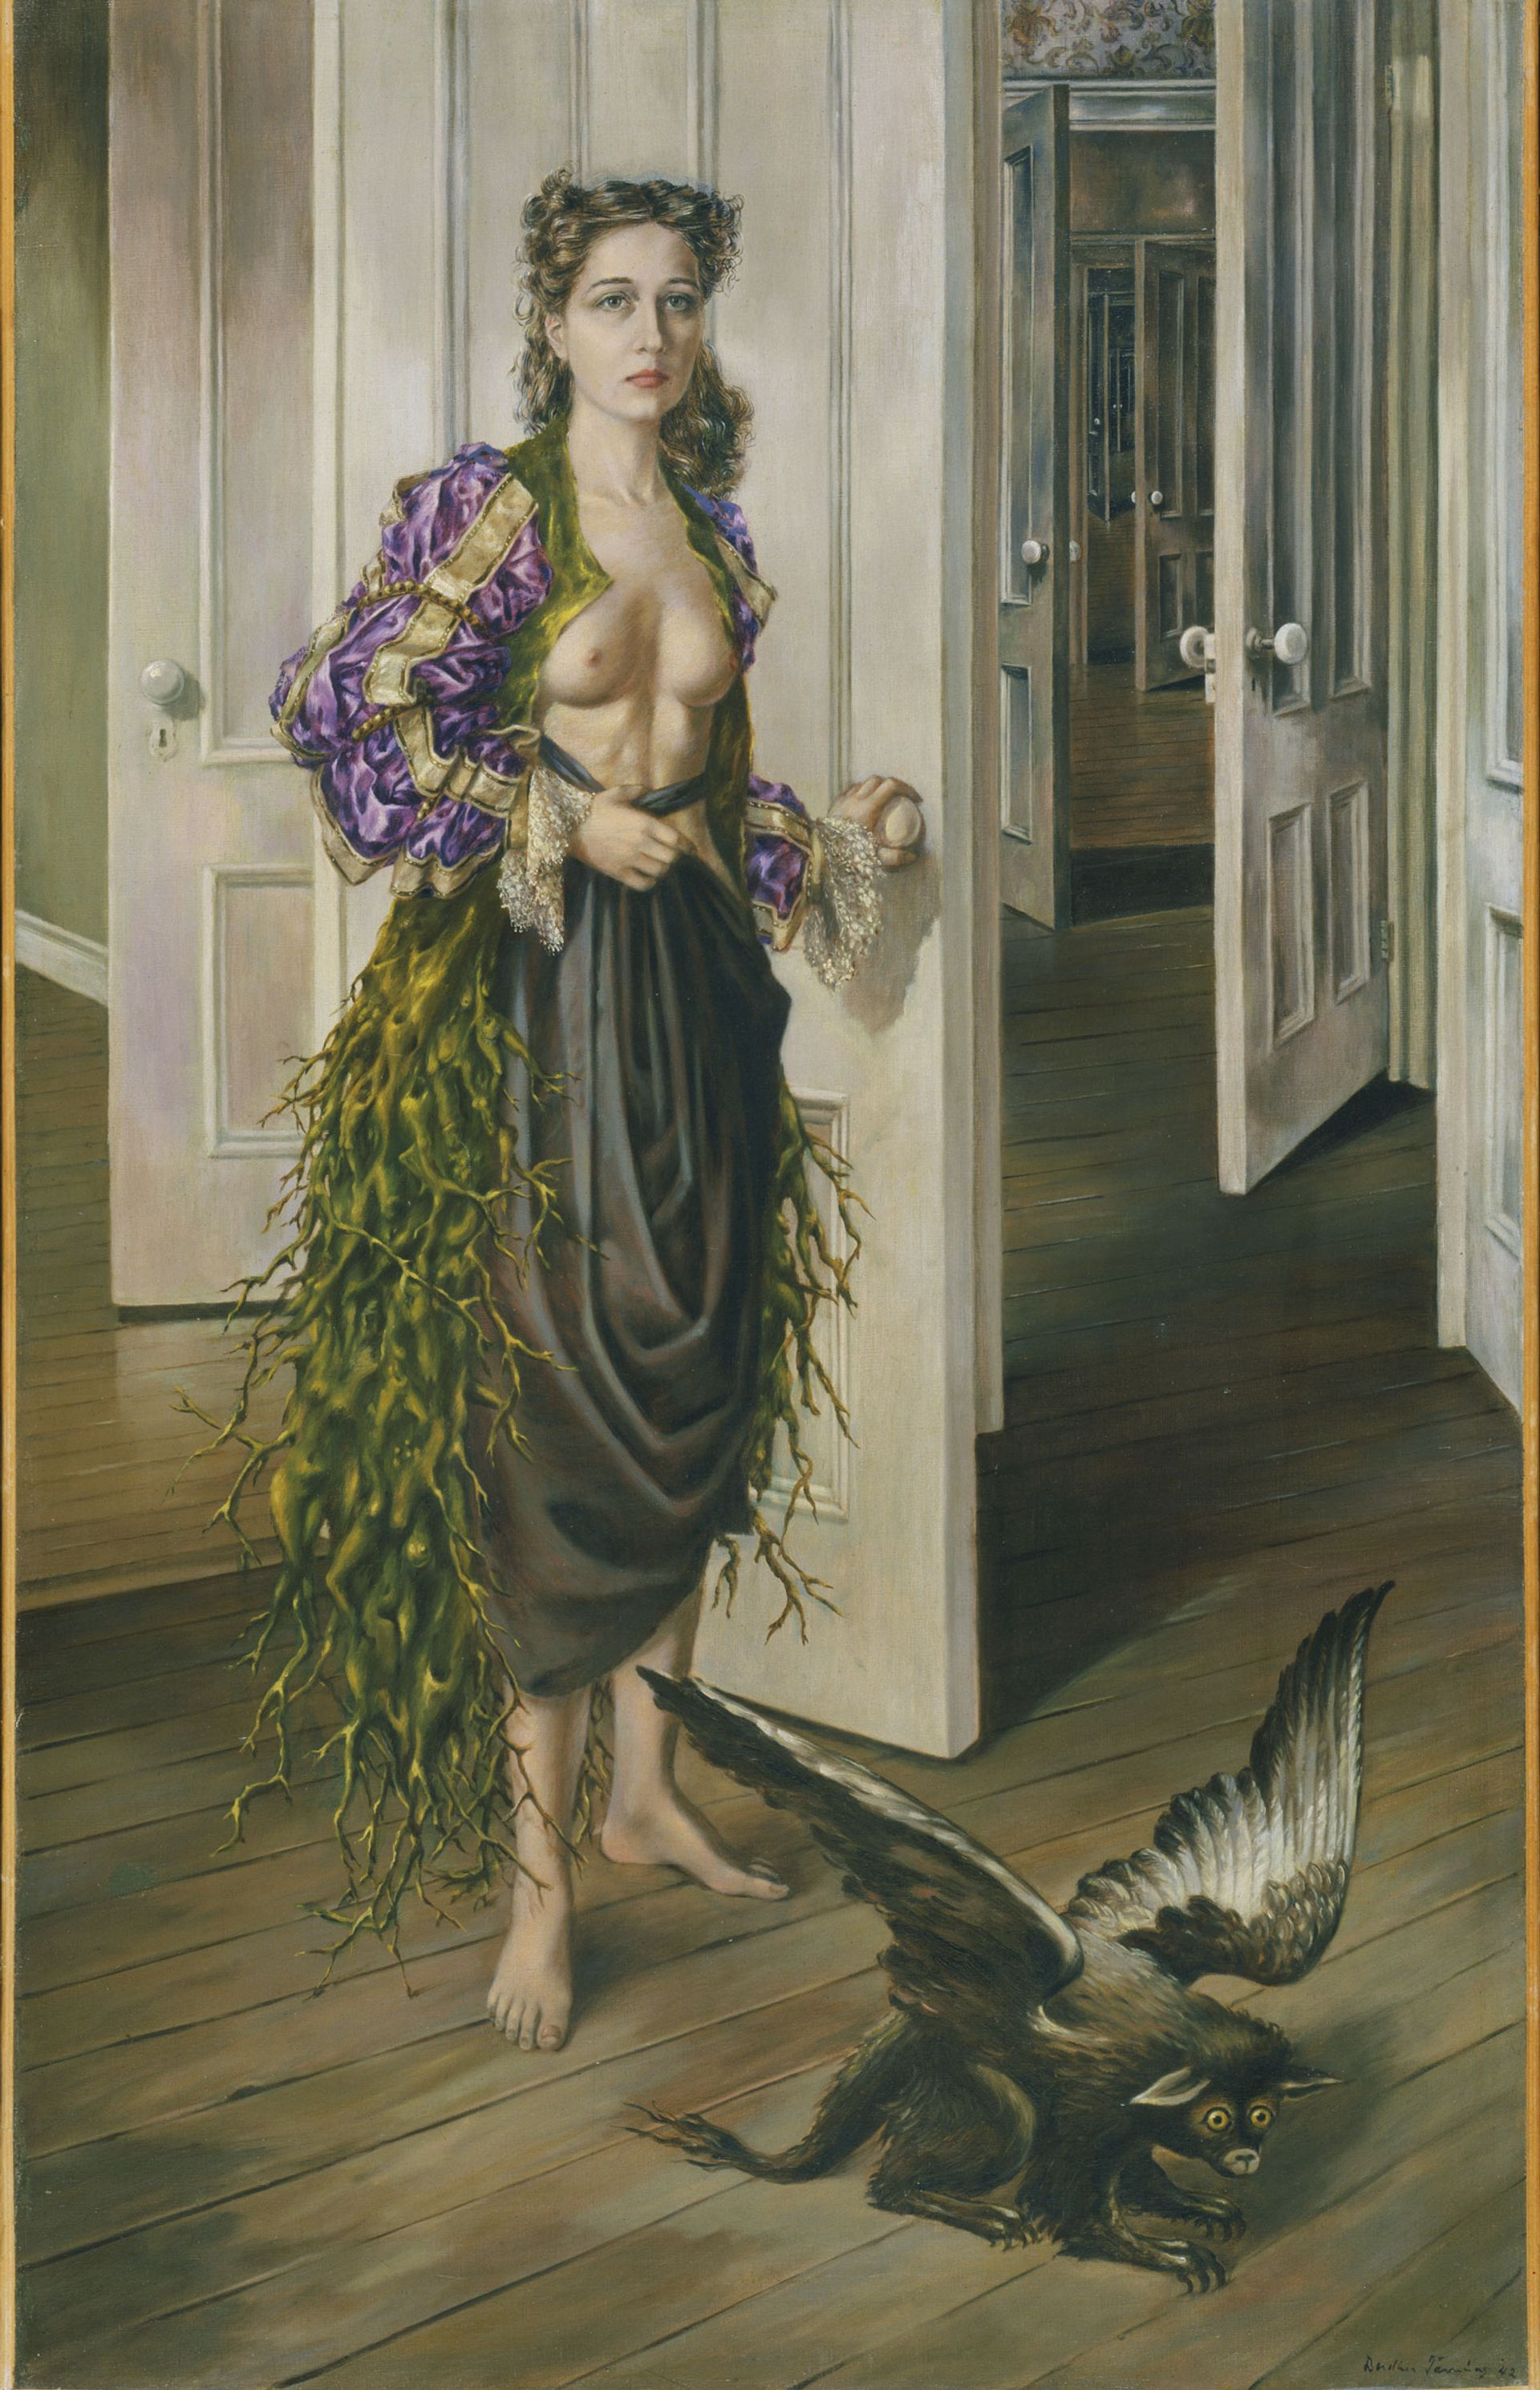 Tanning's self-portrait Birthday (1942) will be the first work visitors see in the exhibition Philadelphia Museum of Art, 125th Anniversary Acquisition. Purchased with funds contributed by C. K. Williams, II, 1999-50-1 © Artists Rights Society (ARS), New York